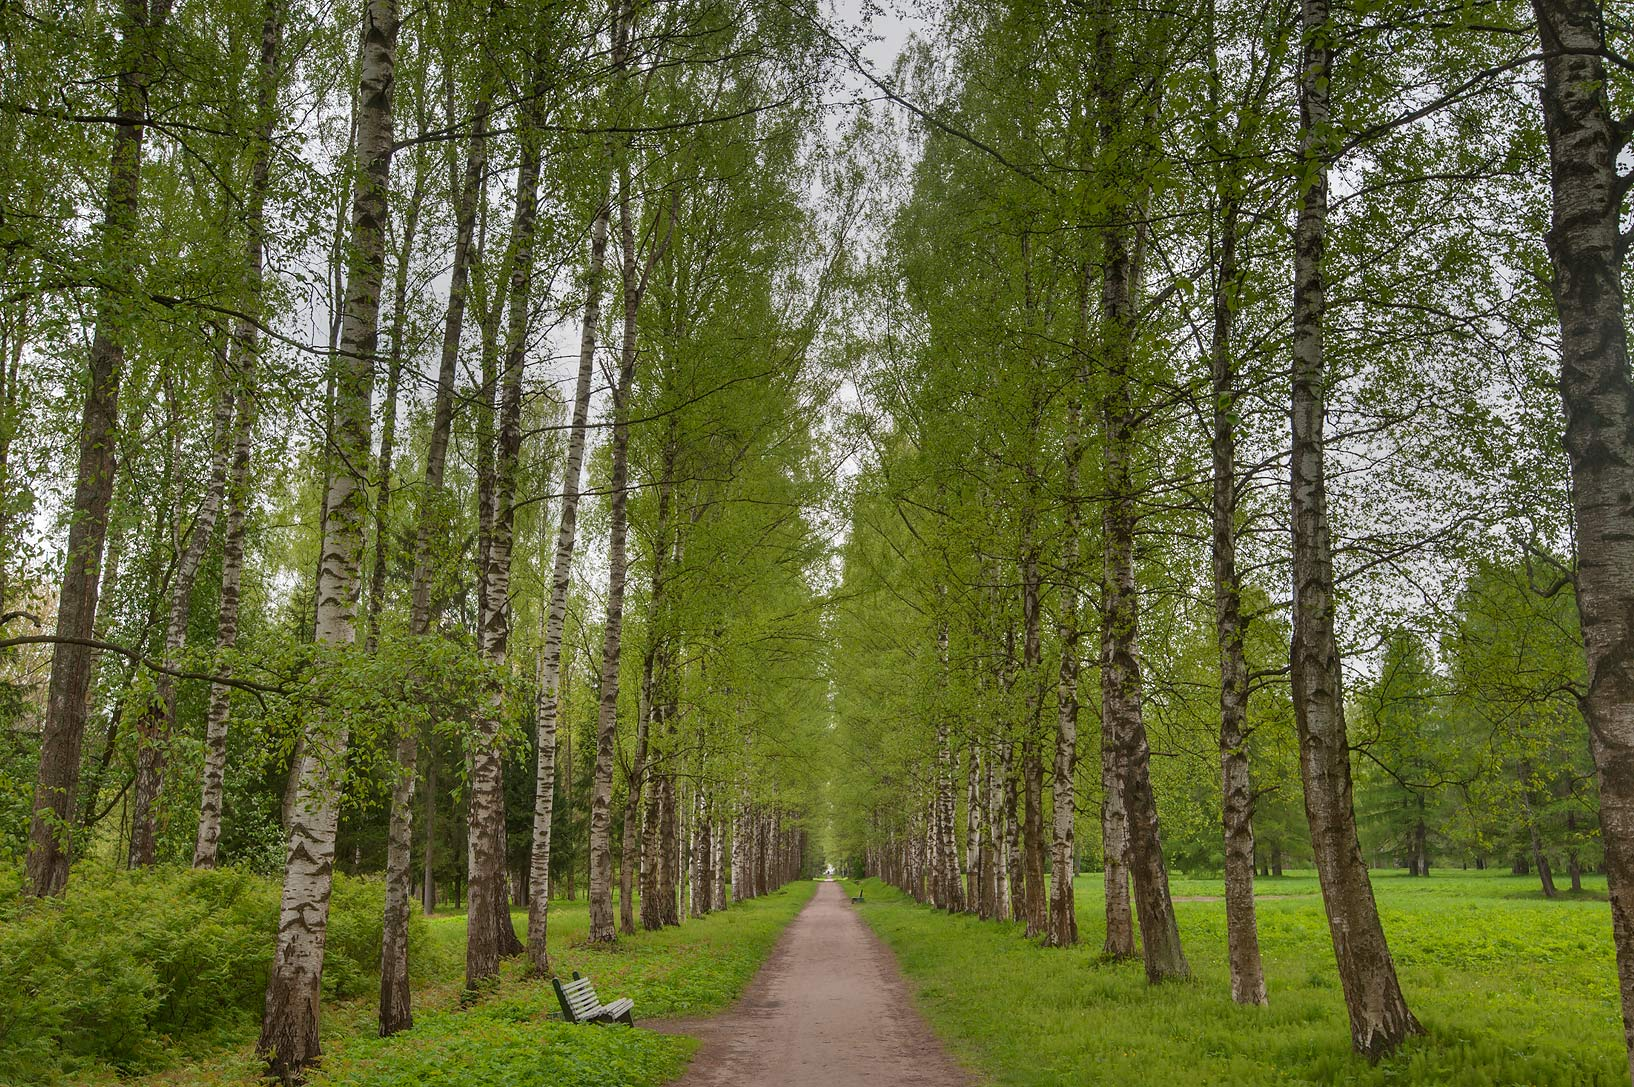 Birch alley near Sadovaya St. in Pavlovsk Park. Pavlovsk, suburb of St.Petersburg, Russia